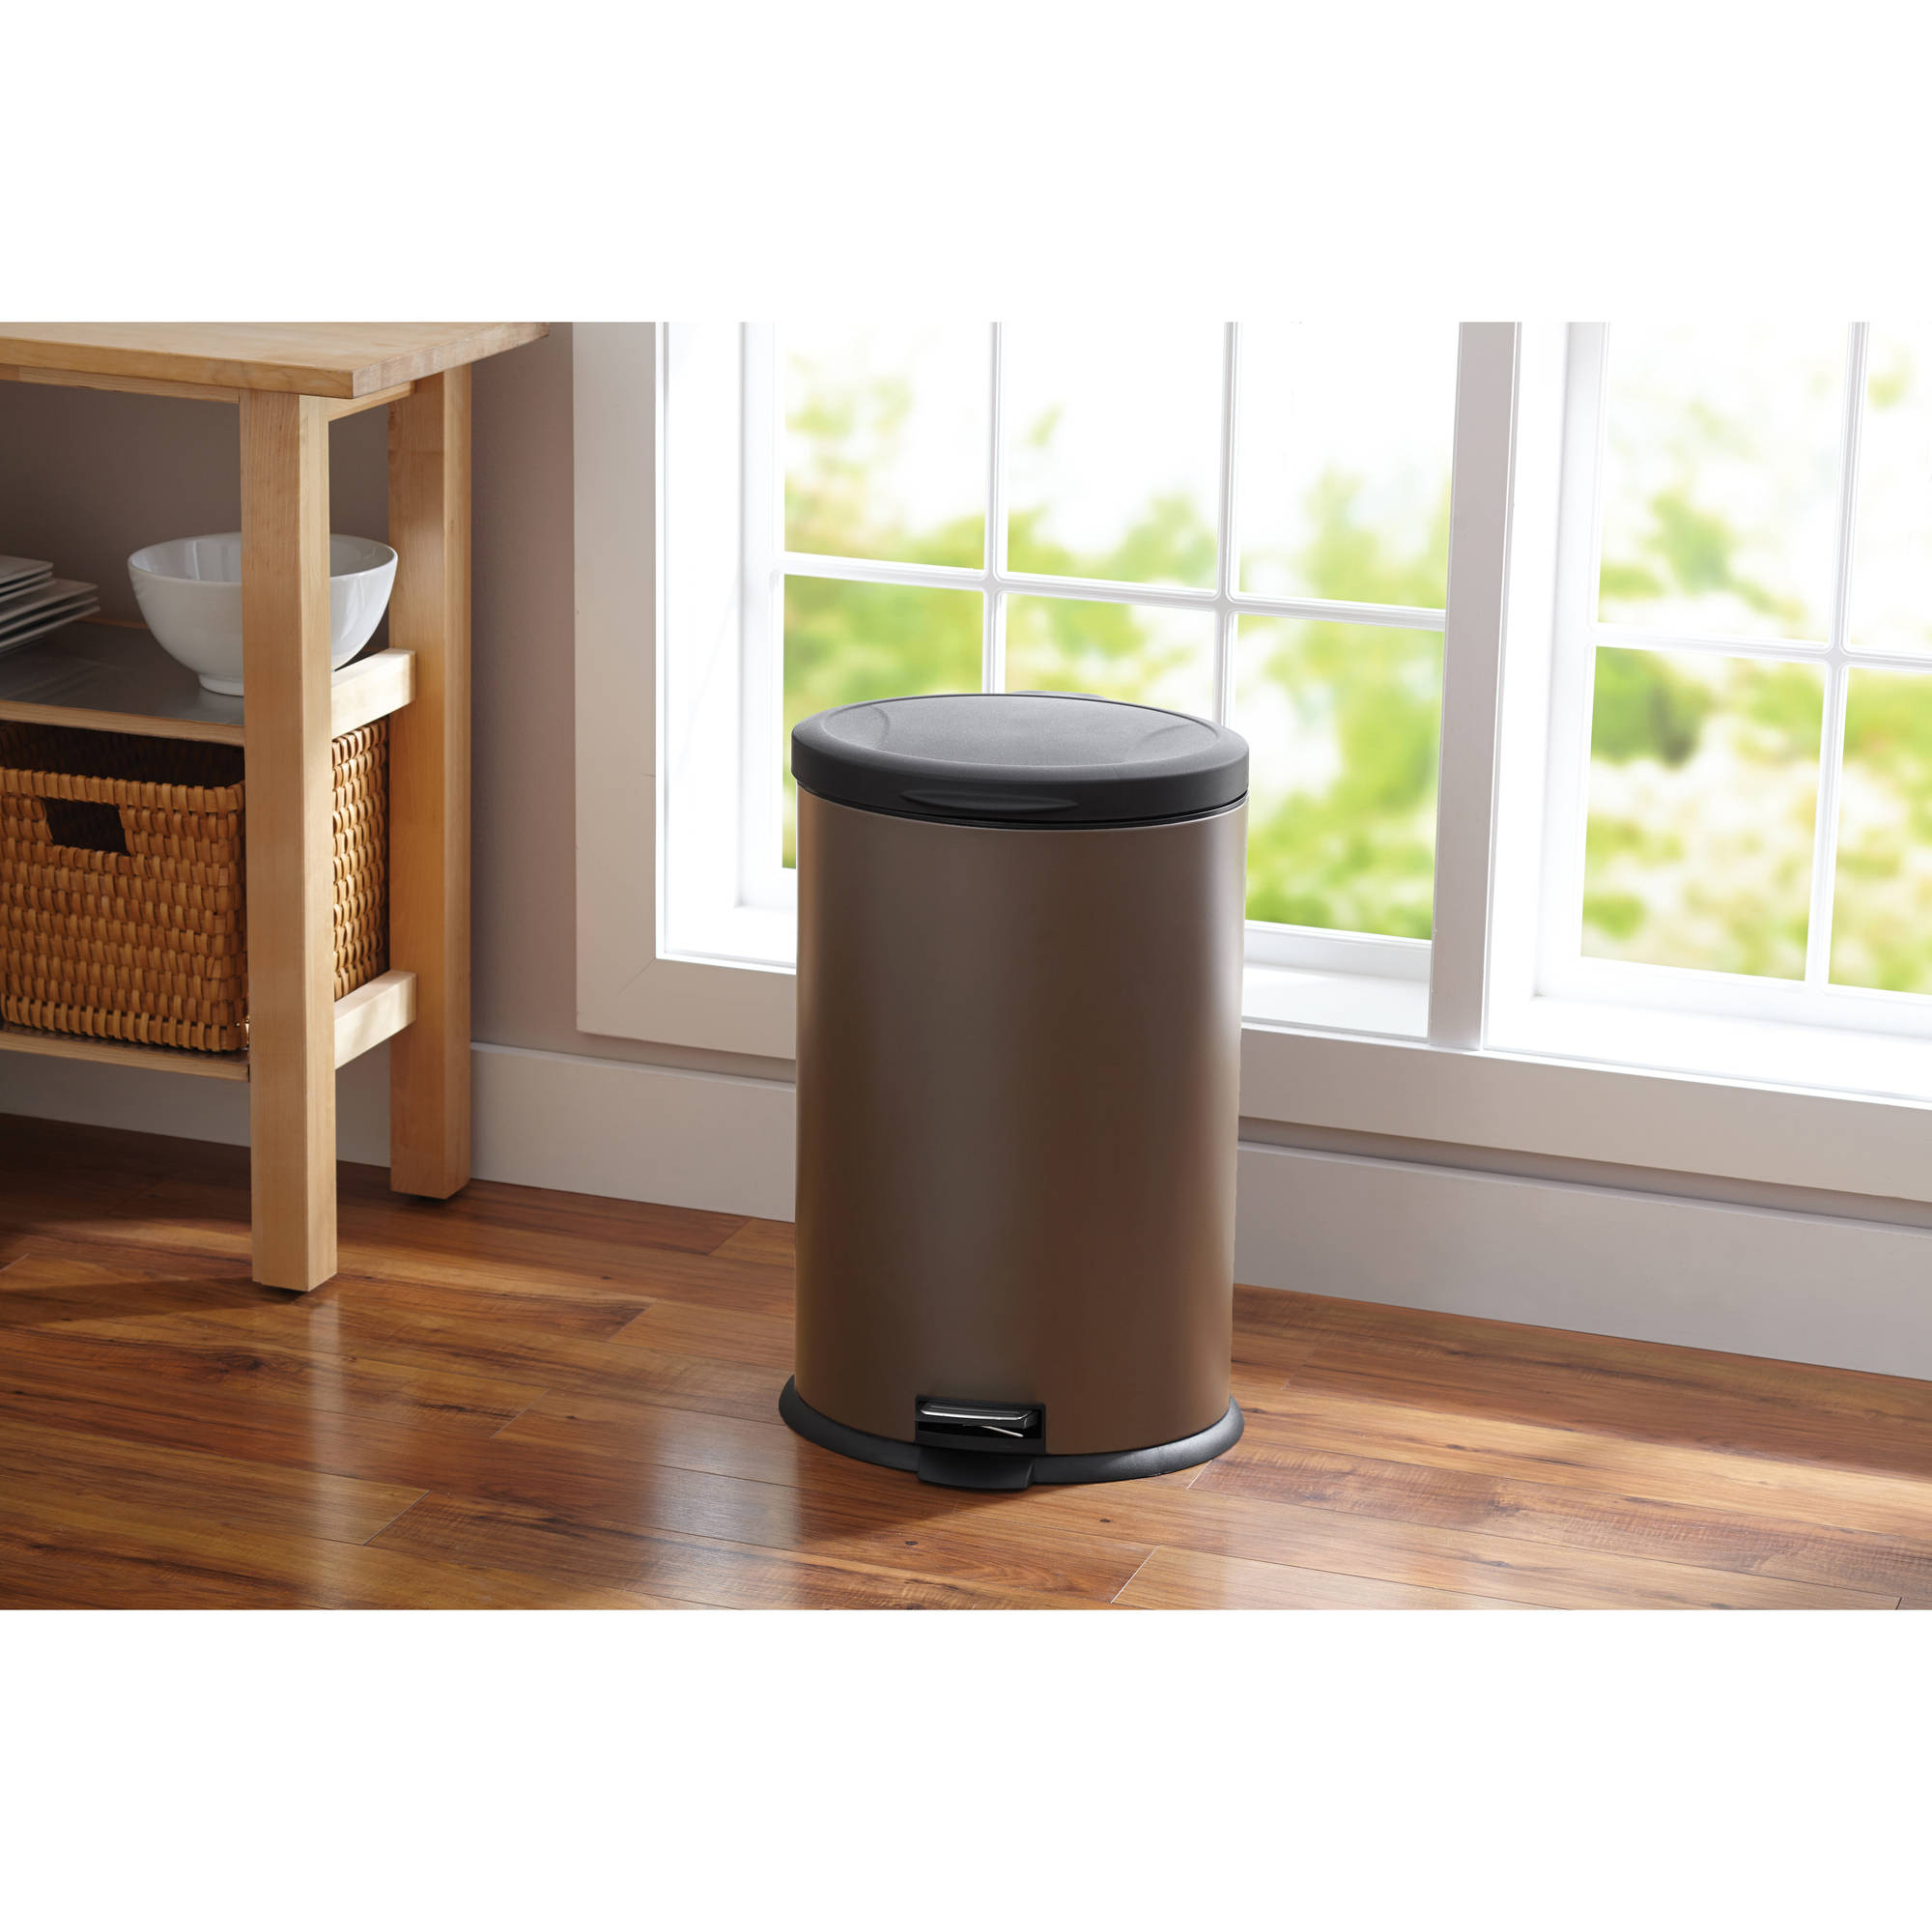 Better Homes and Gardens 10.6-Gallon Oval Trash Can